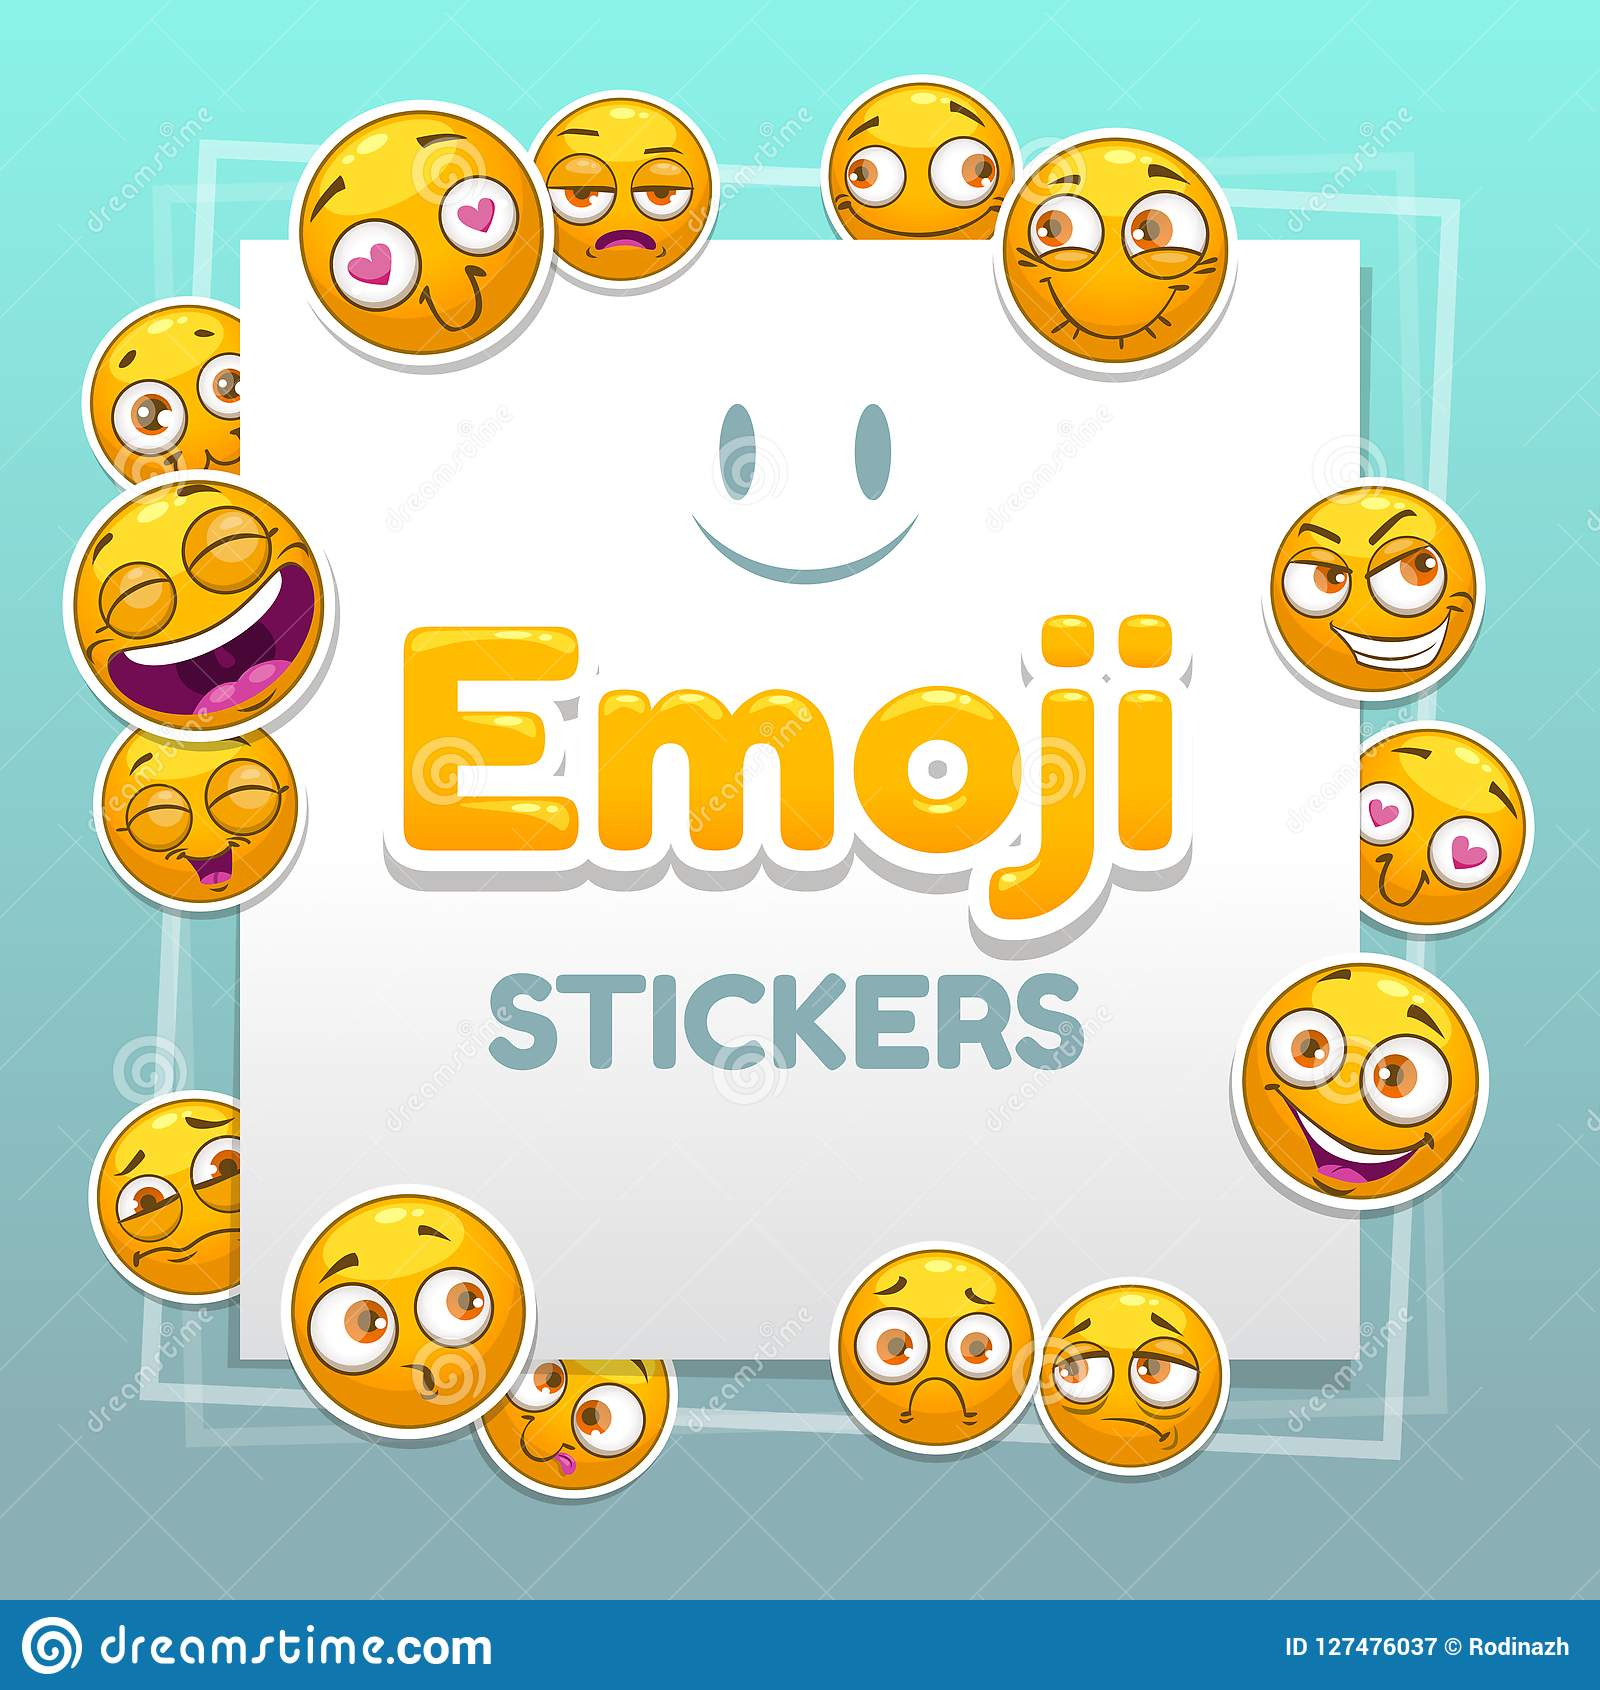 Emoji Stickers Background  Abstract Background With Funny Smiley